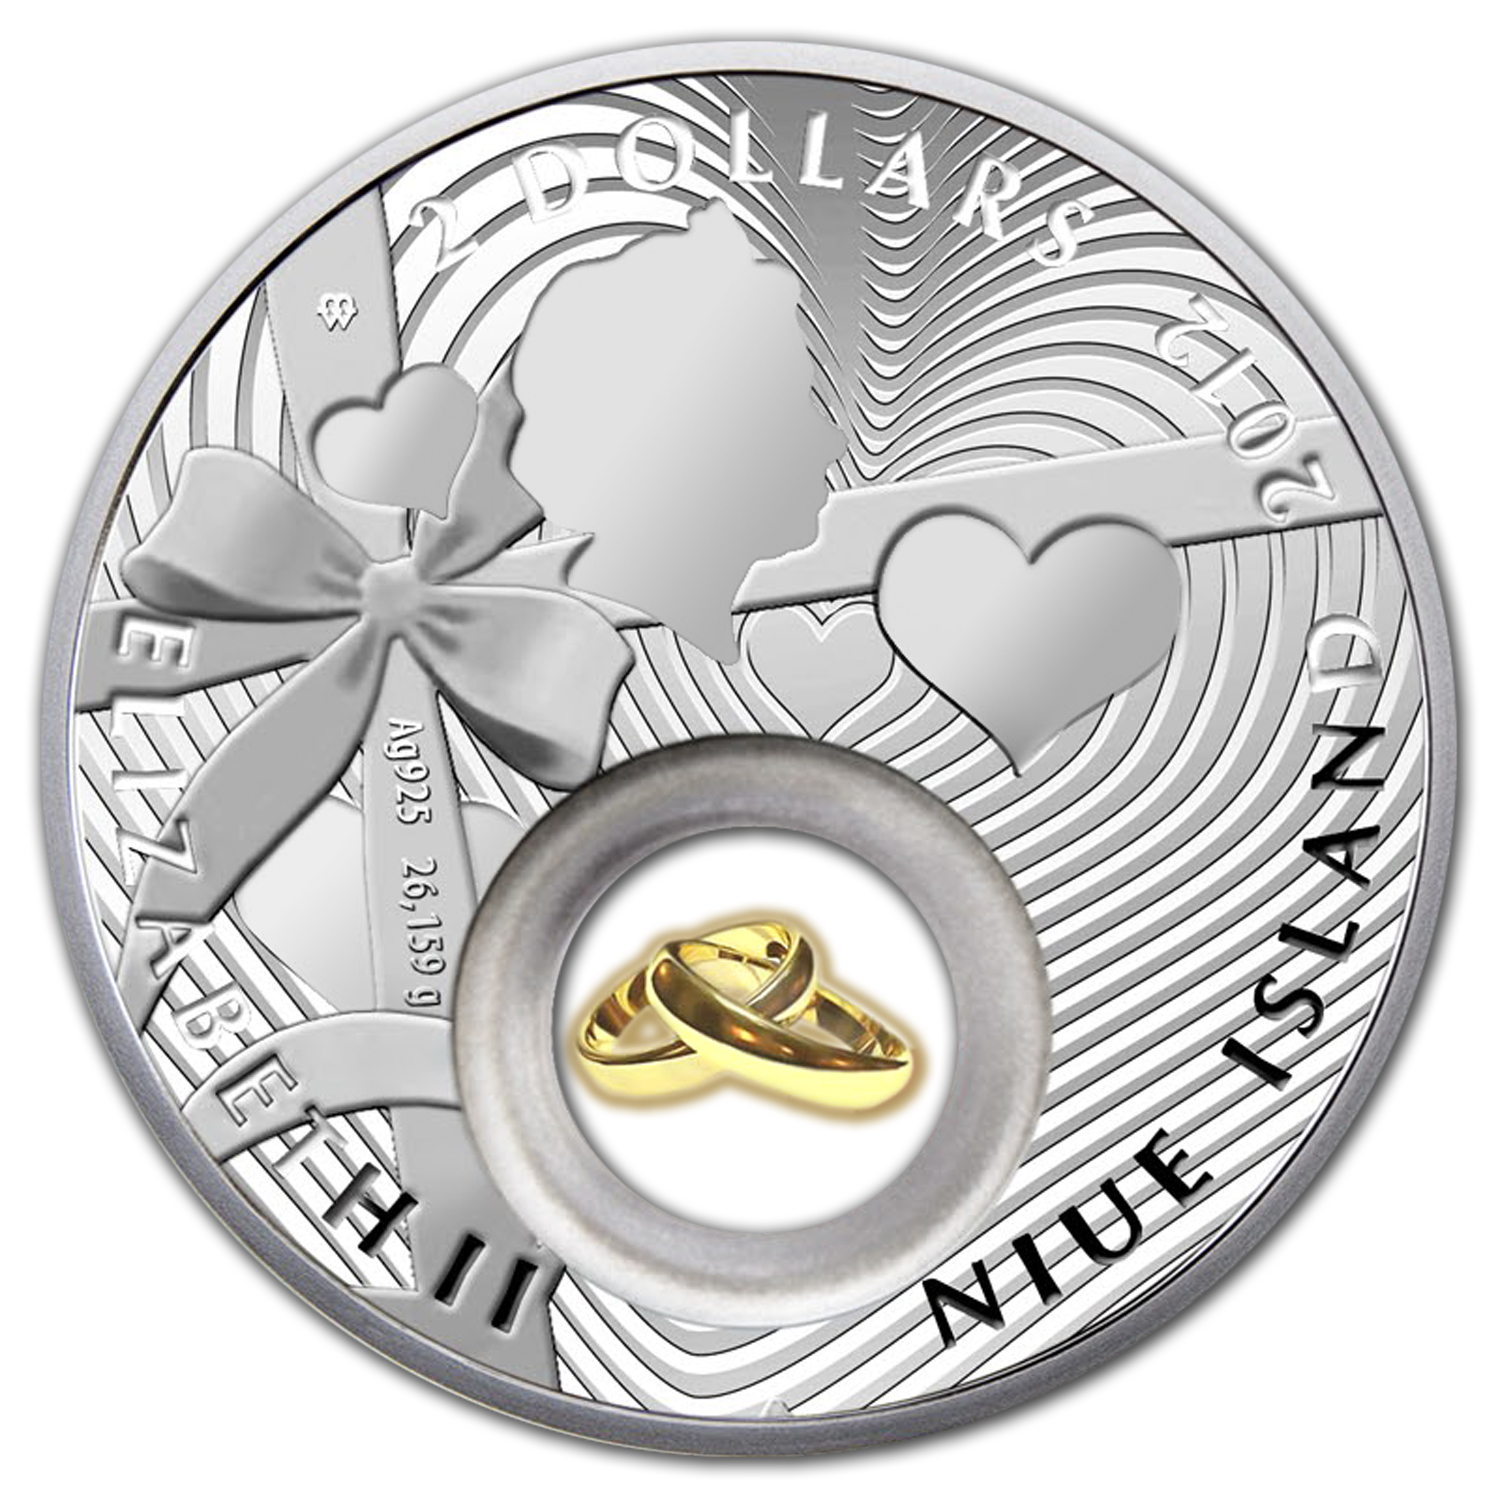 2012 Niue Proof Silver $2 Wedding